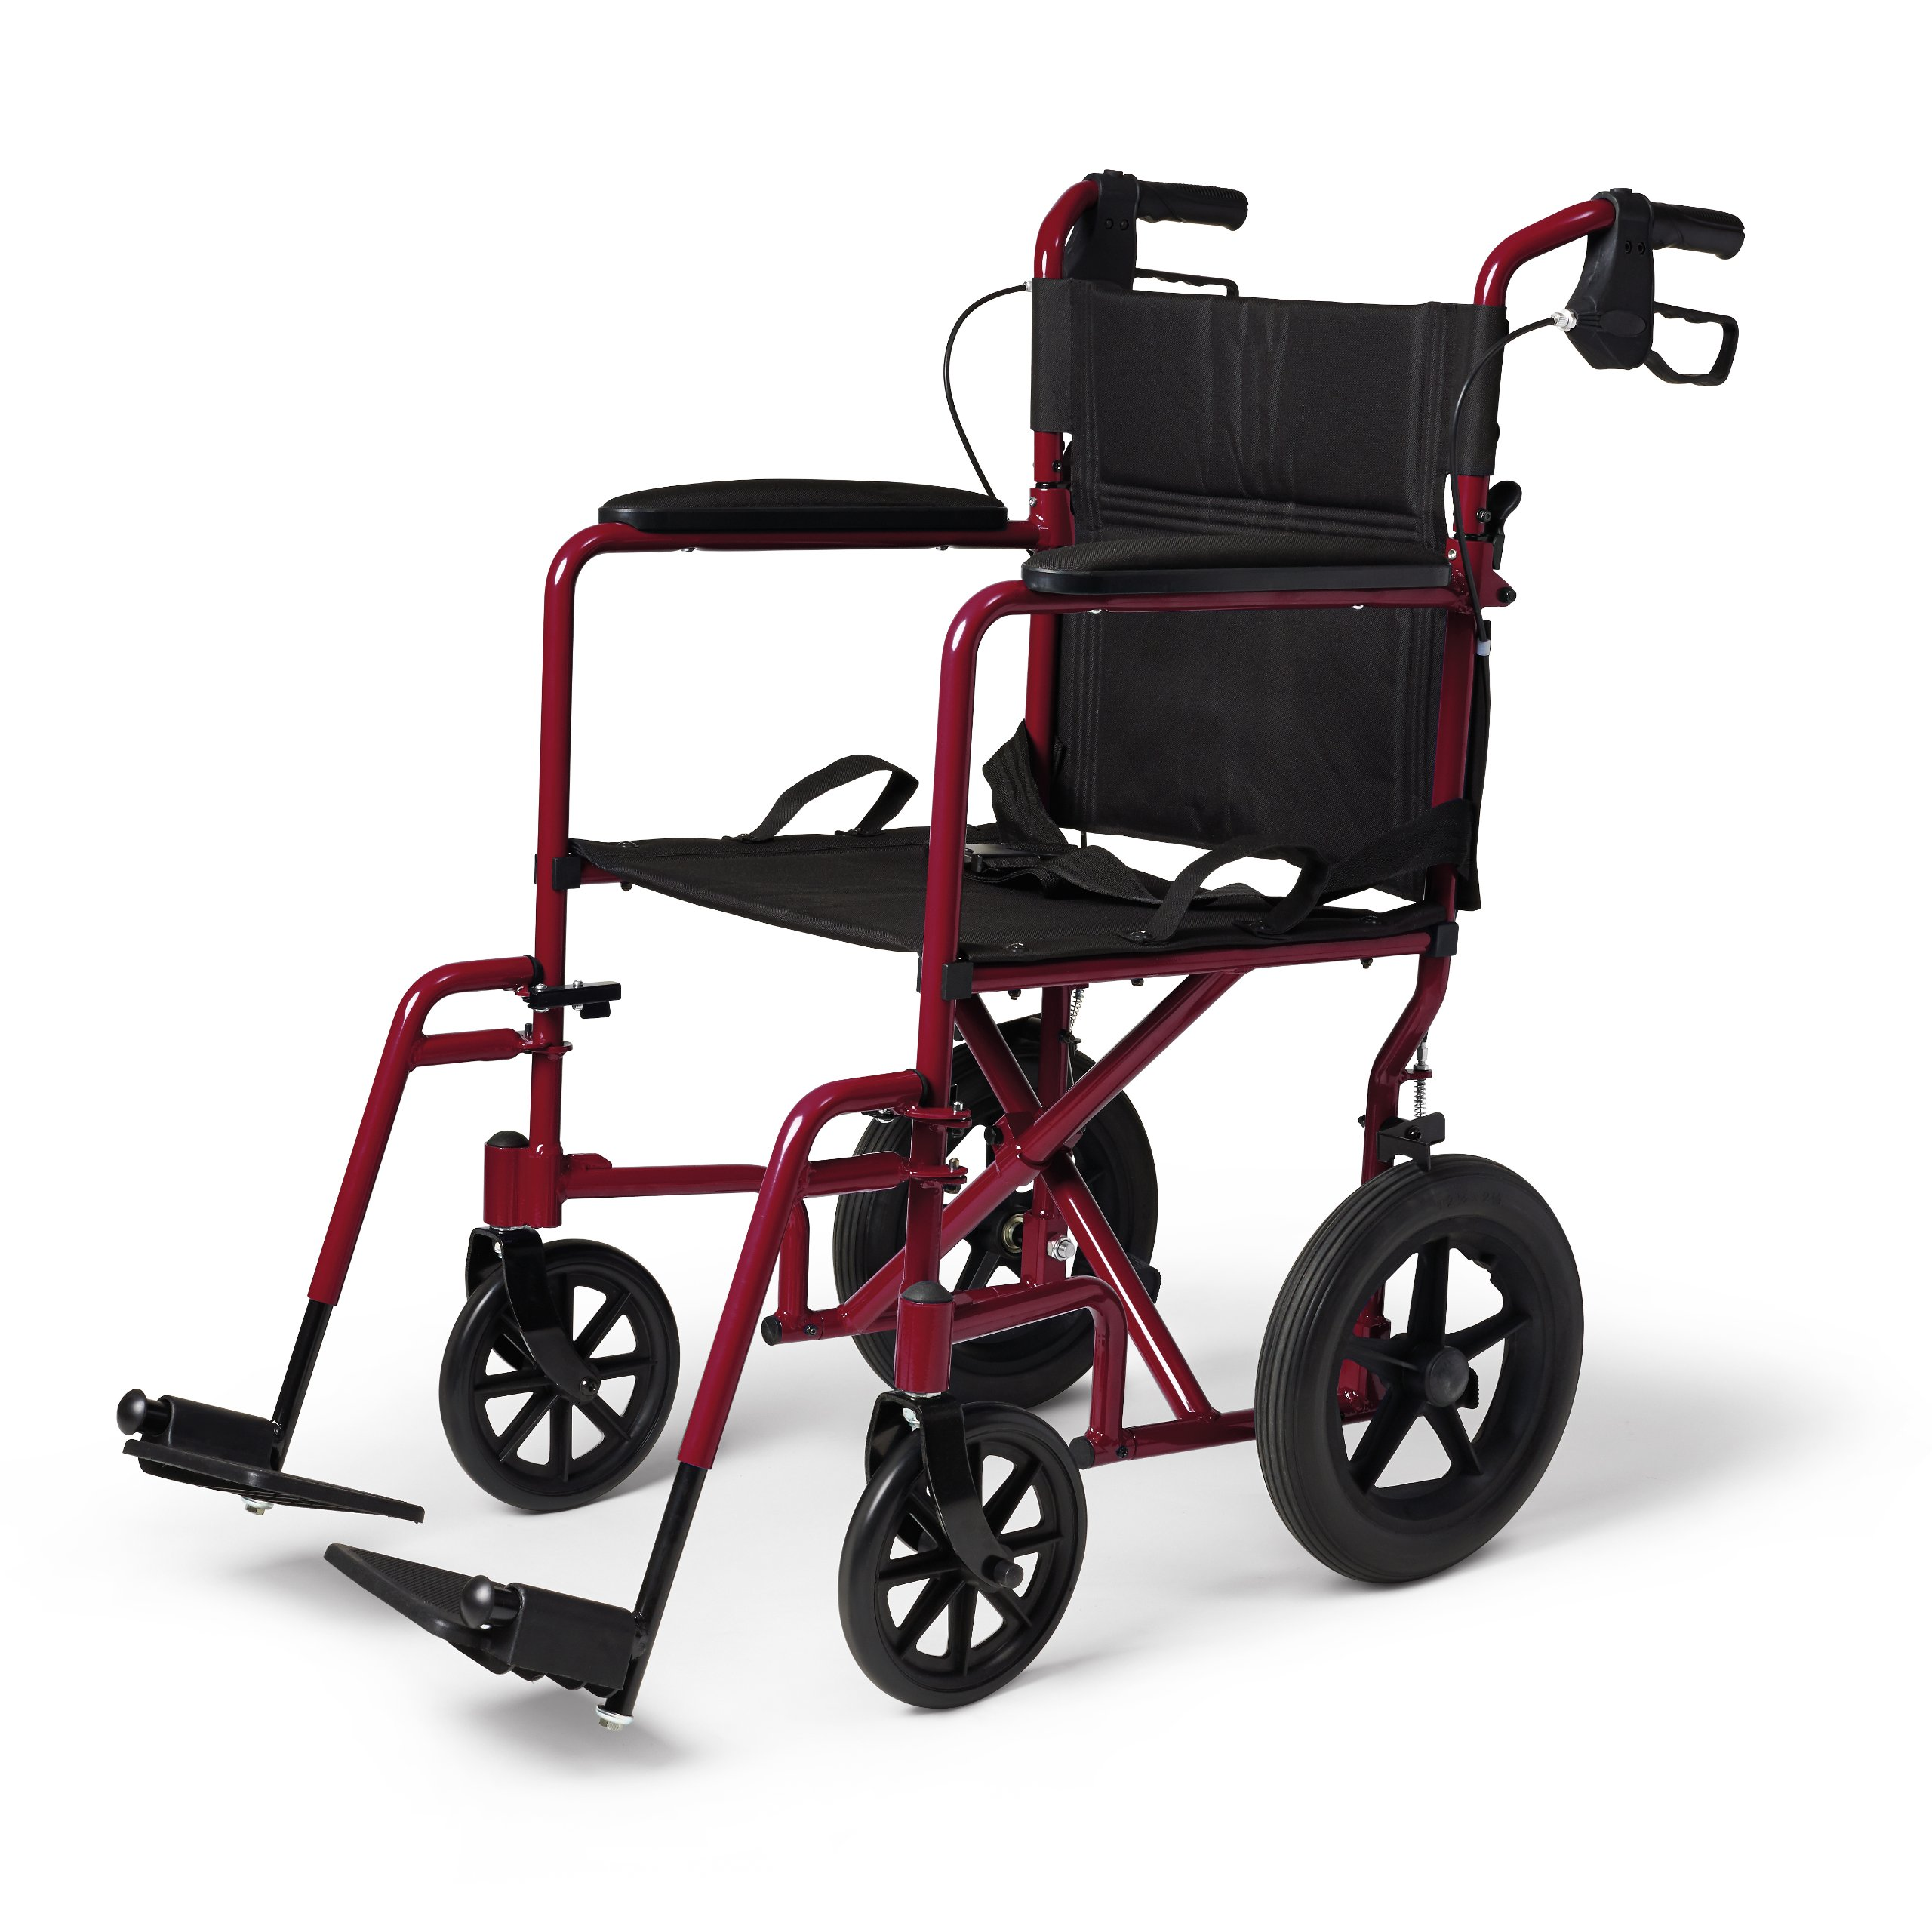 Medline Lightweight Transport Adult Folding Wheelchair with Handbrakes, Red